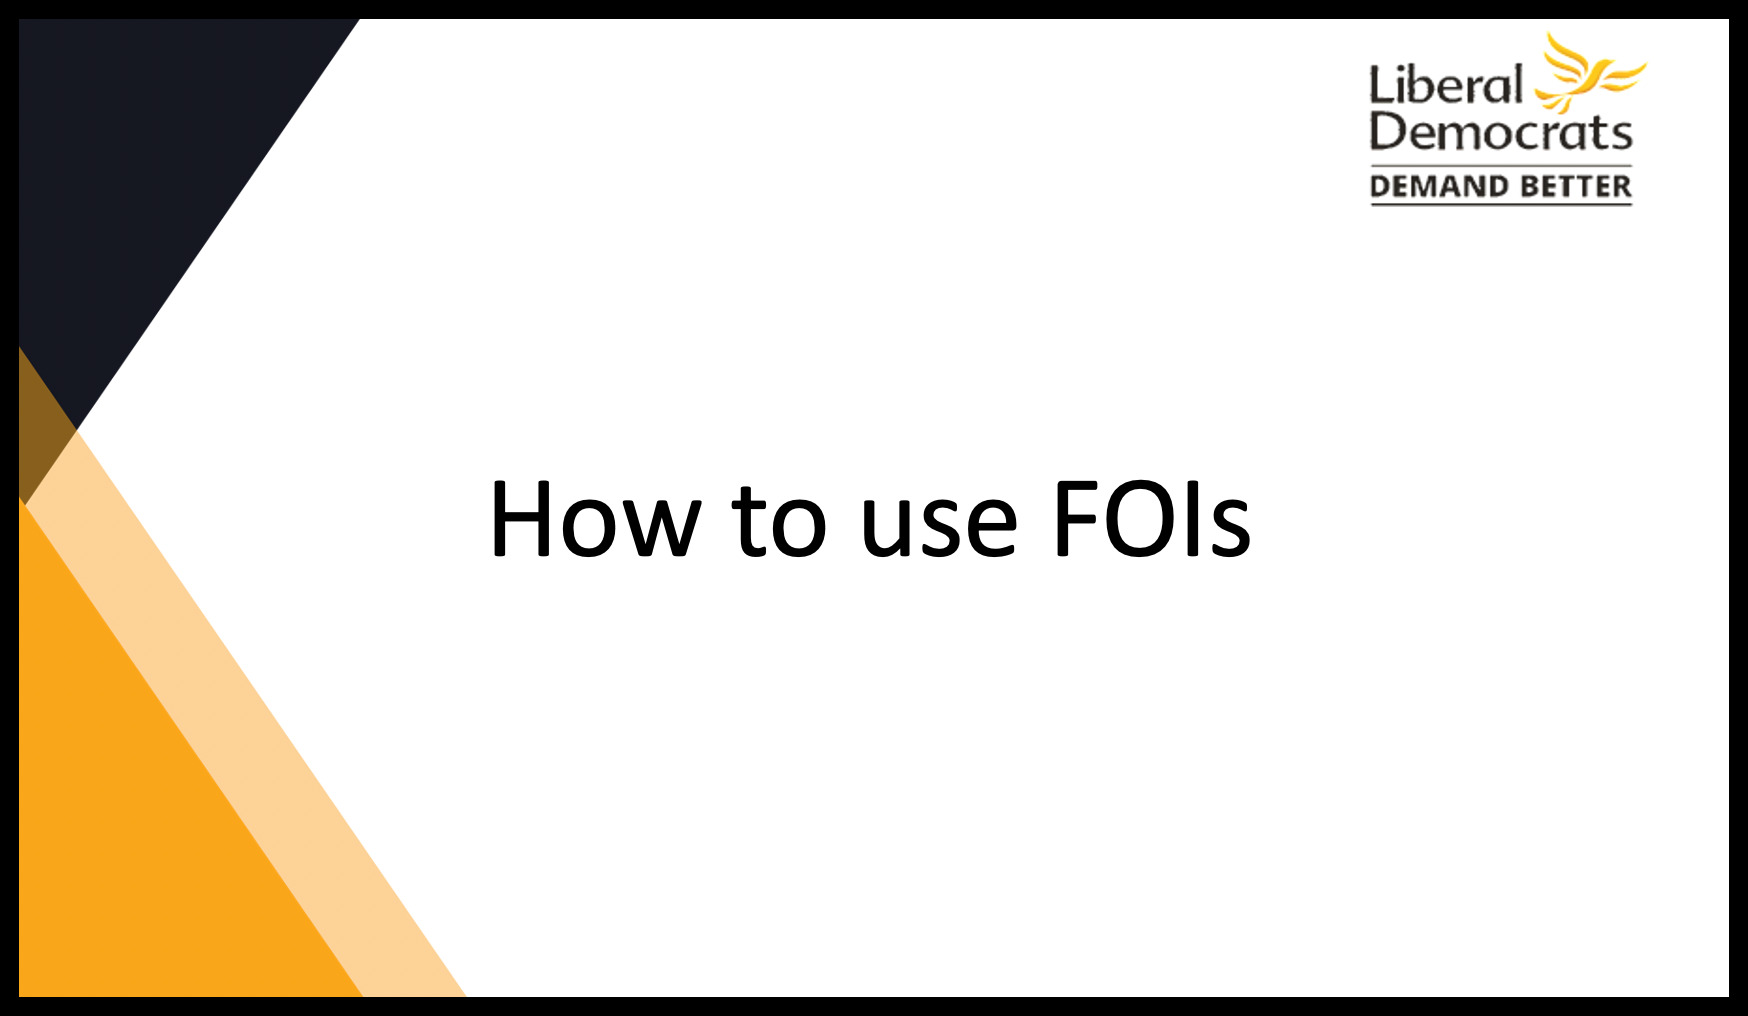 How to use FOIs